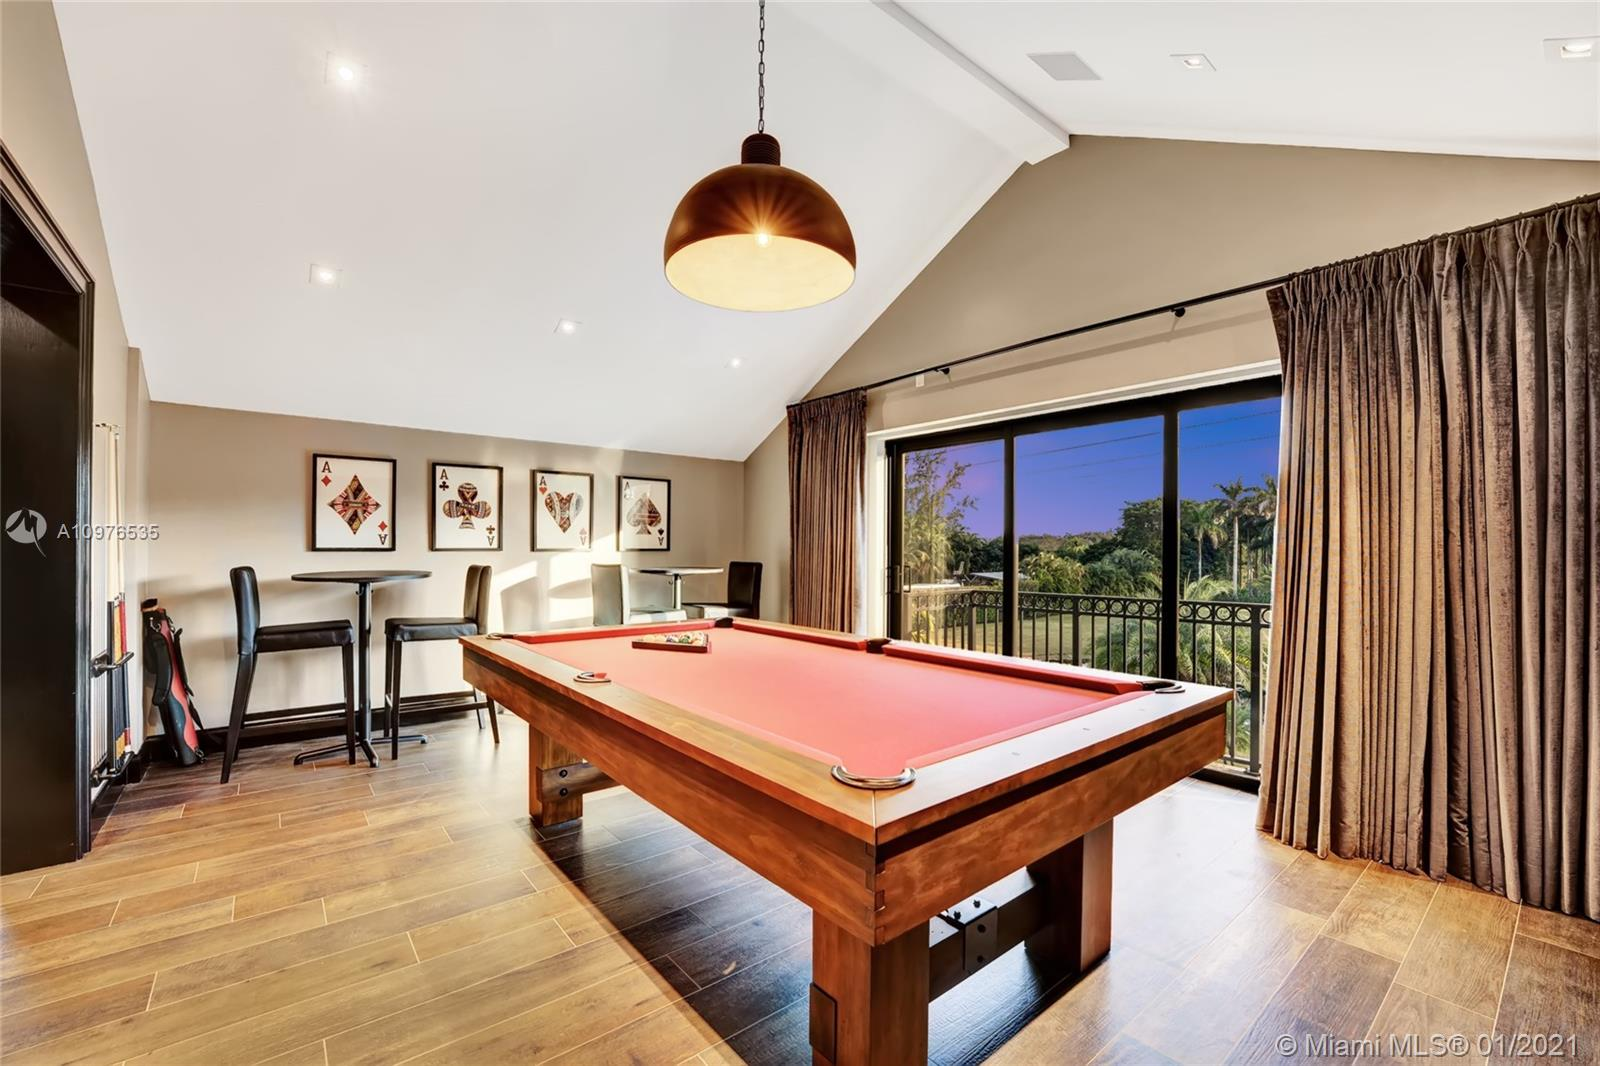 Pool table/entertainment area with sound absorption walls.